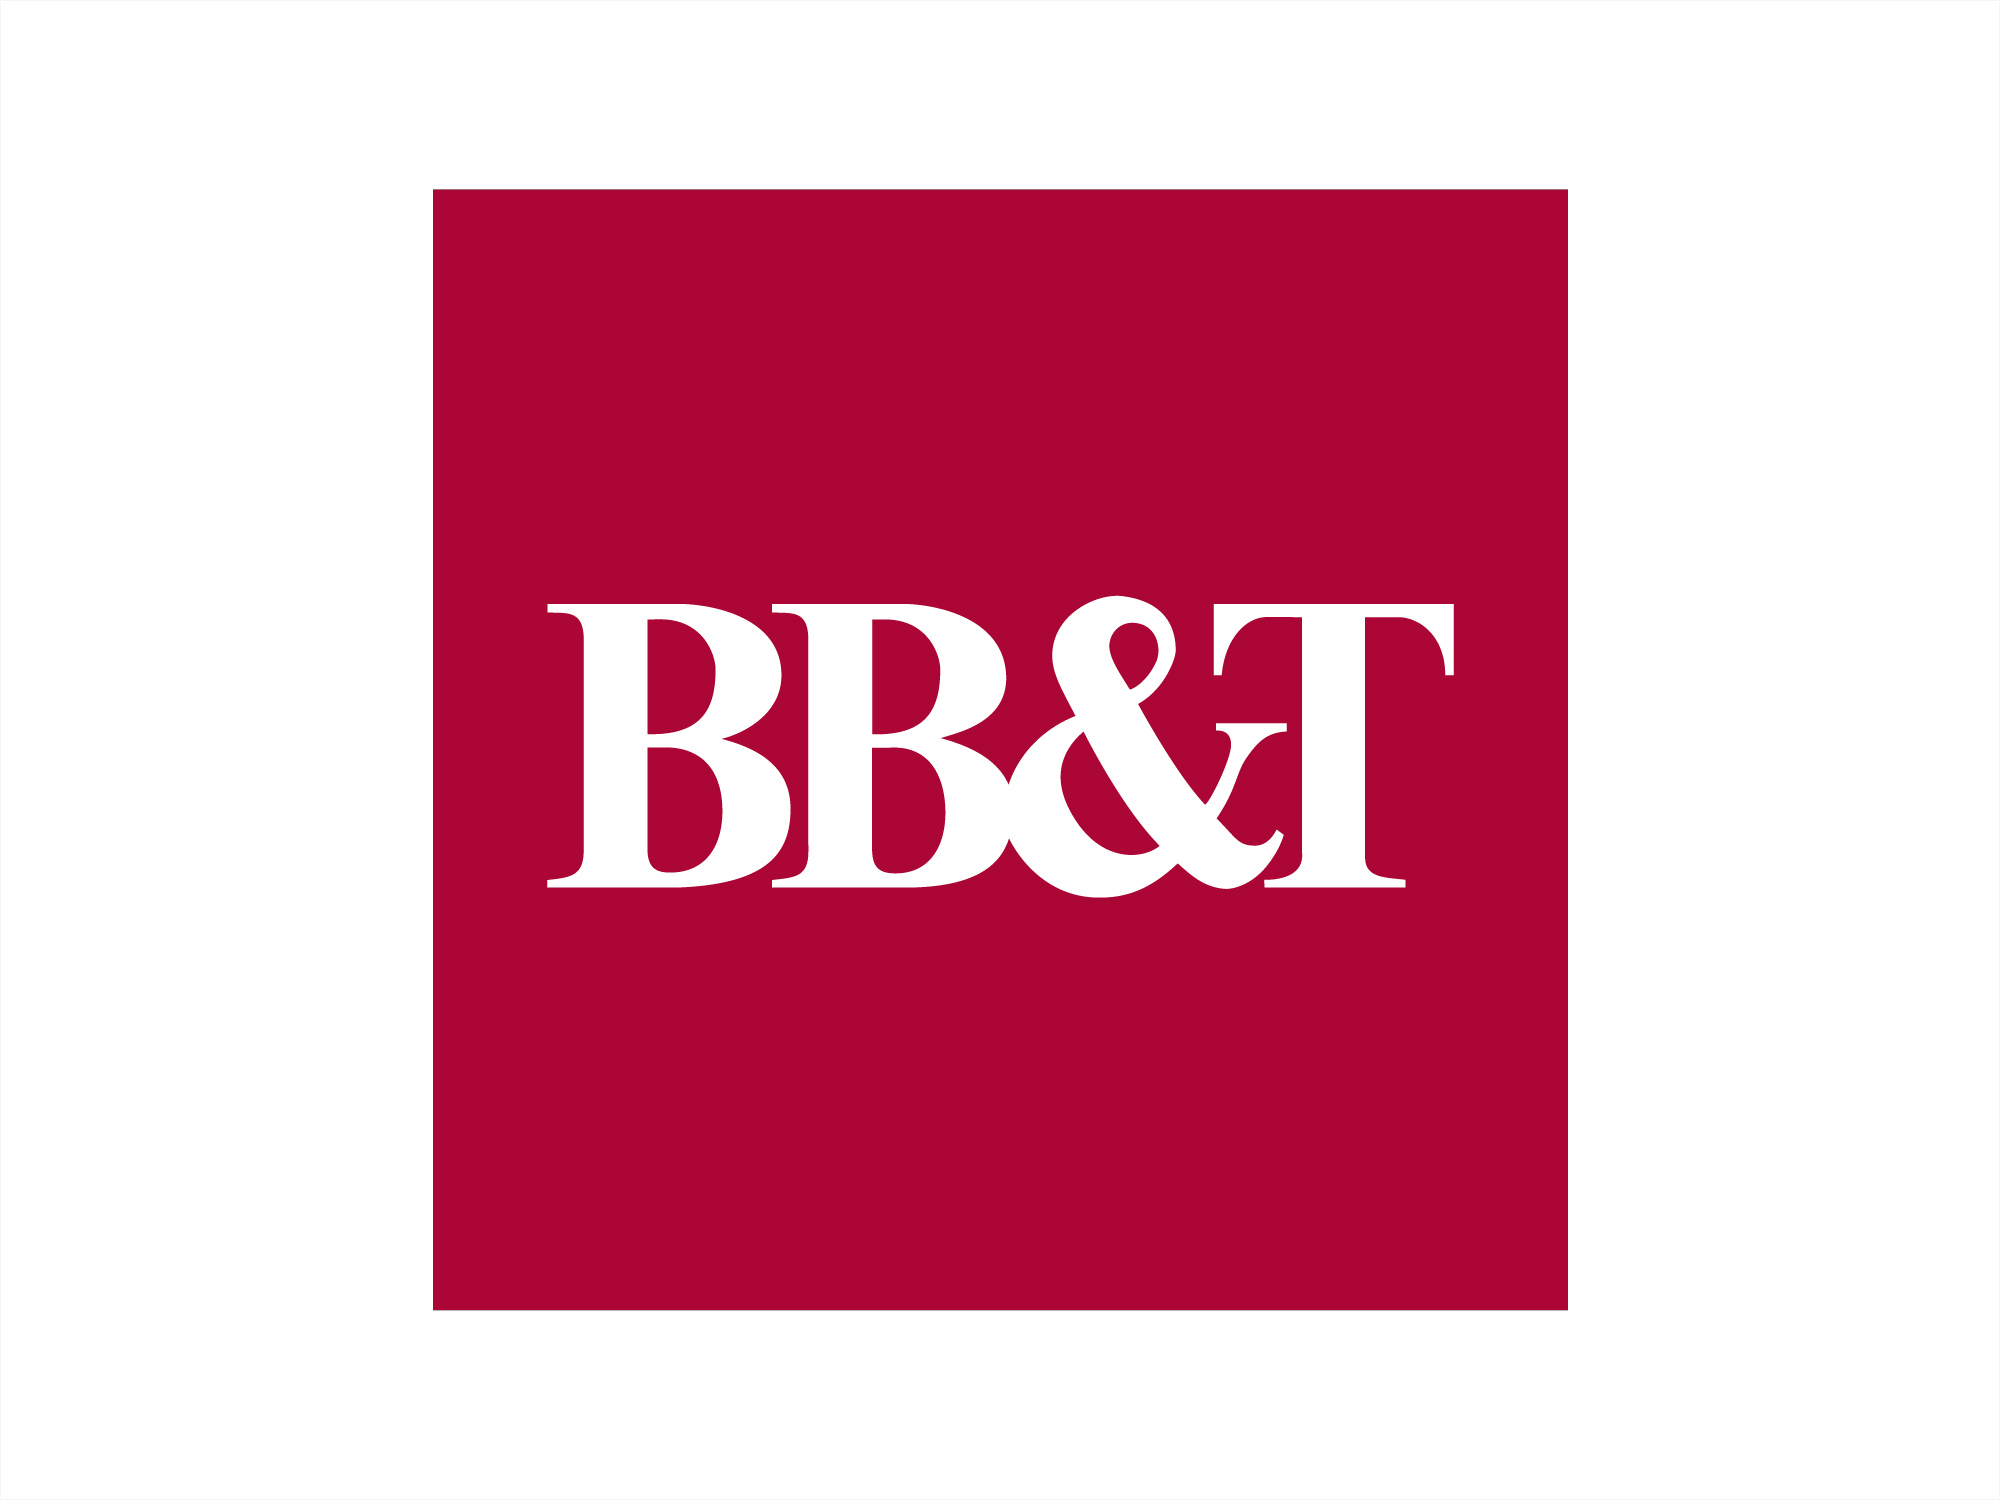 BB&T Bank customers experiencing online outage; ATM's affected